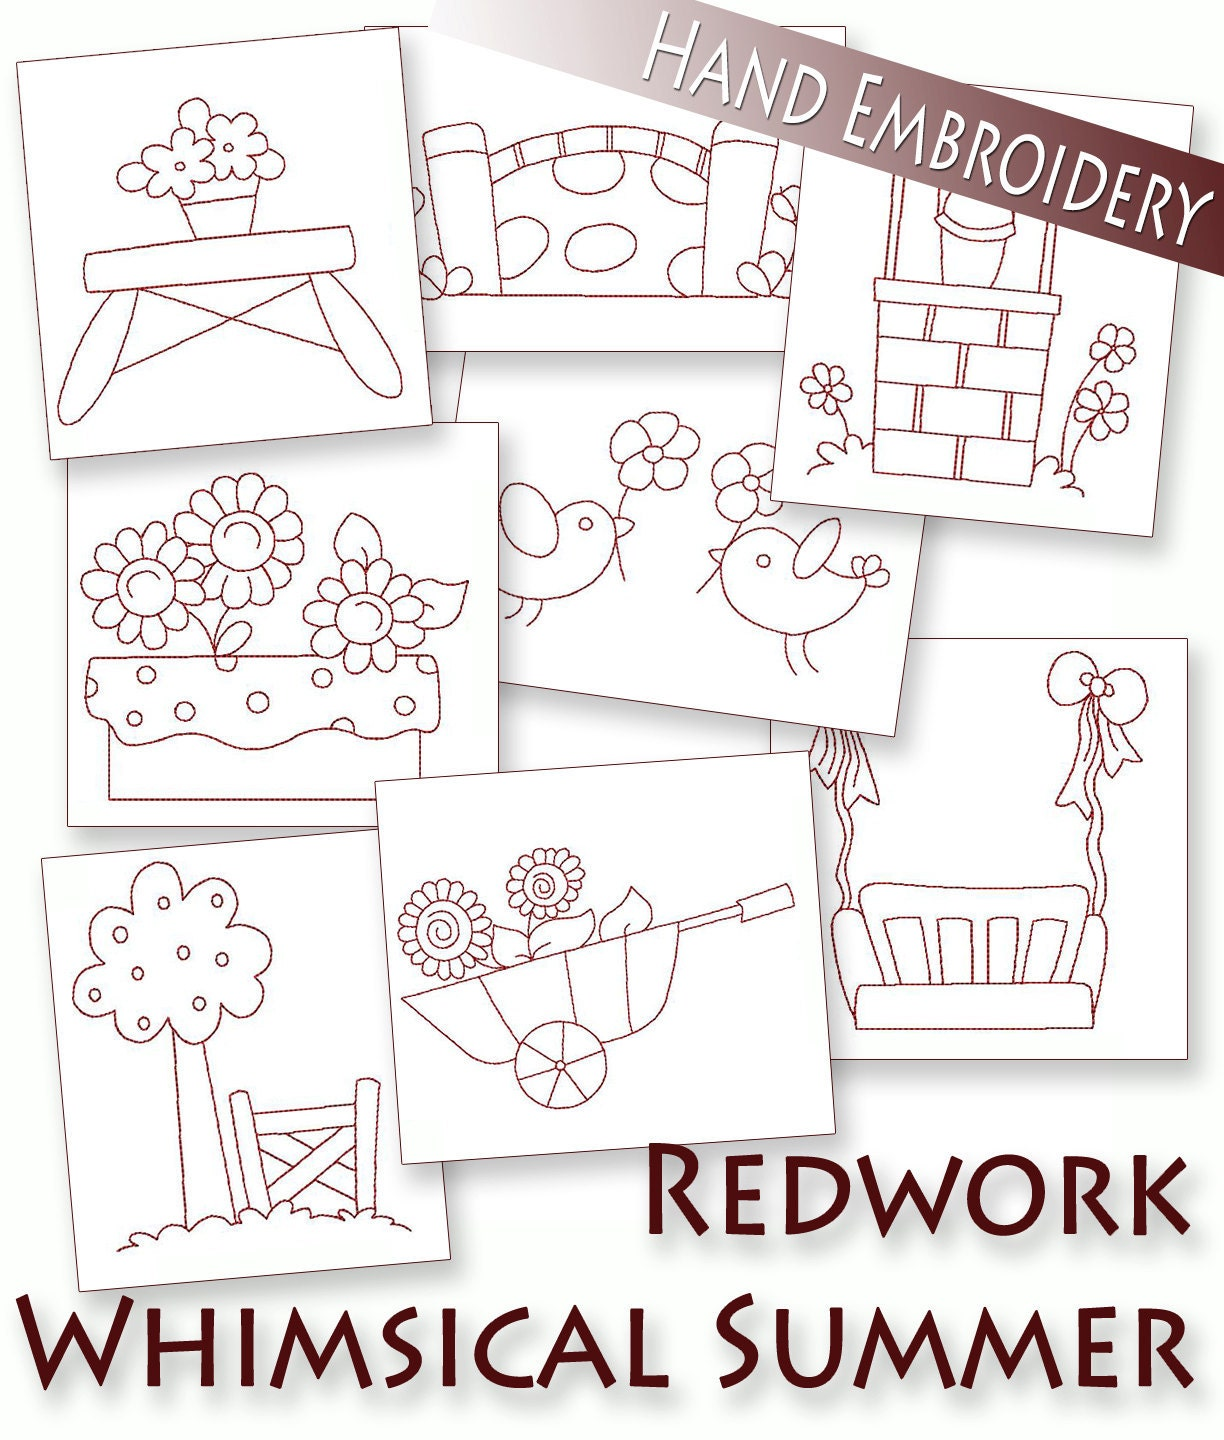 Sale hand embroidery patterns redwork designs whimsical